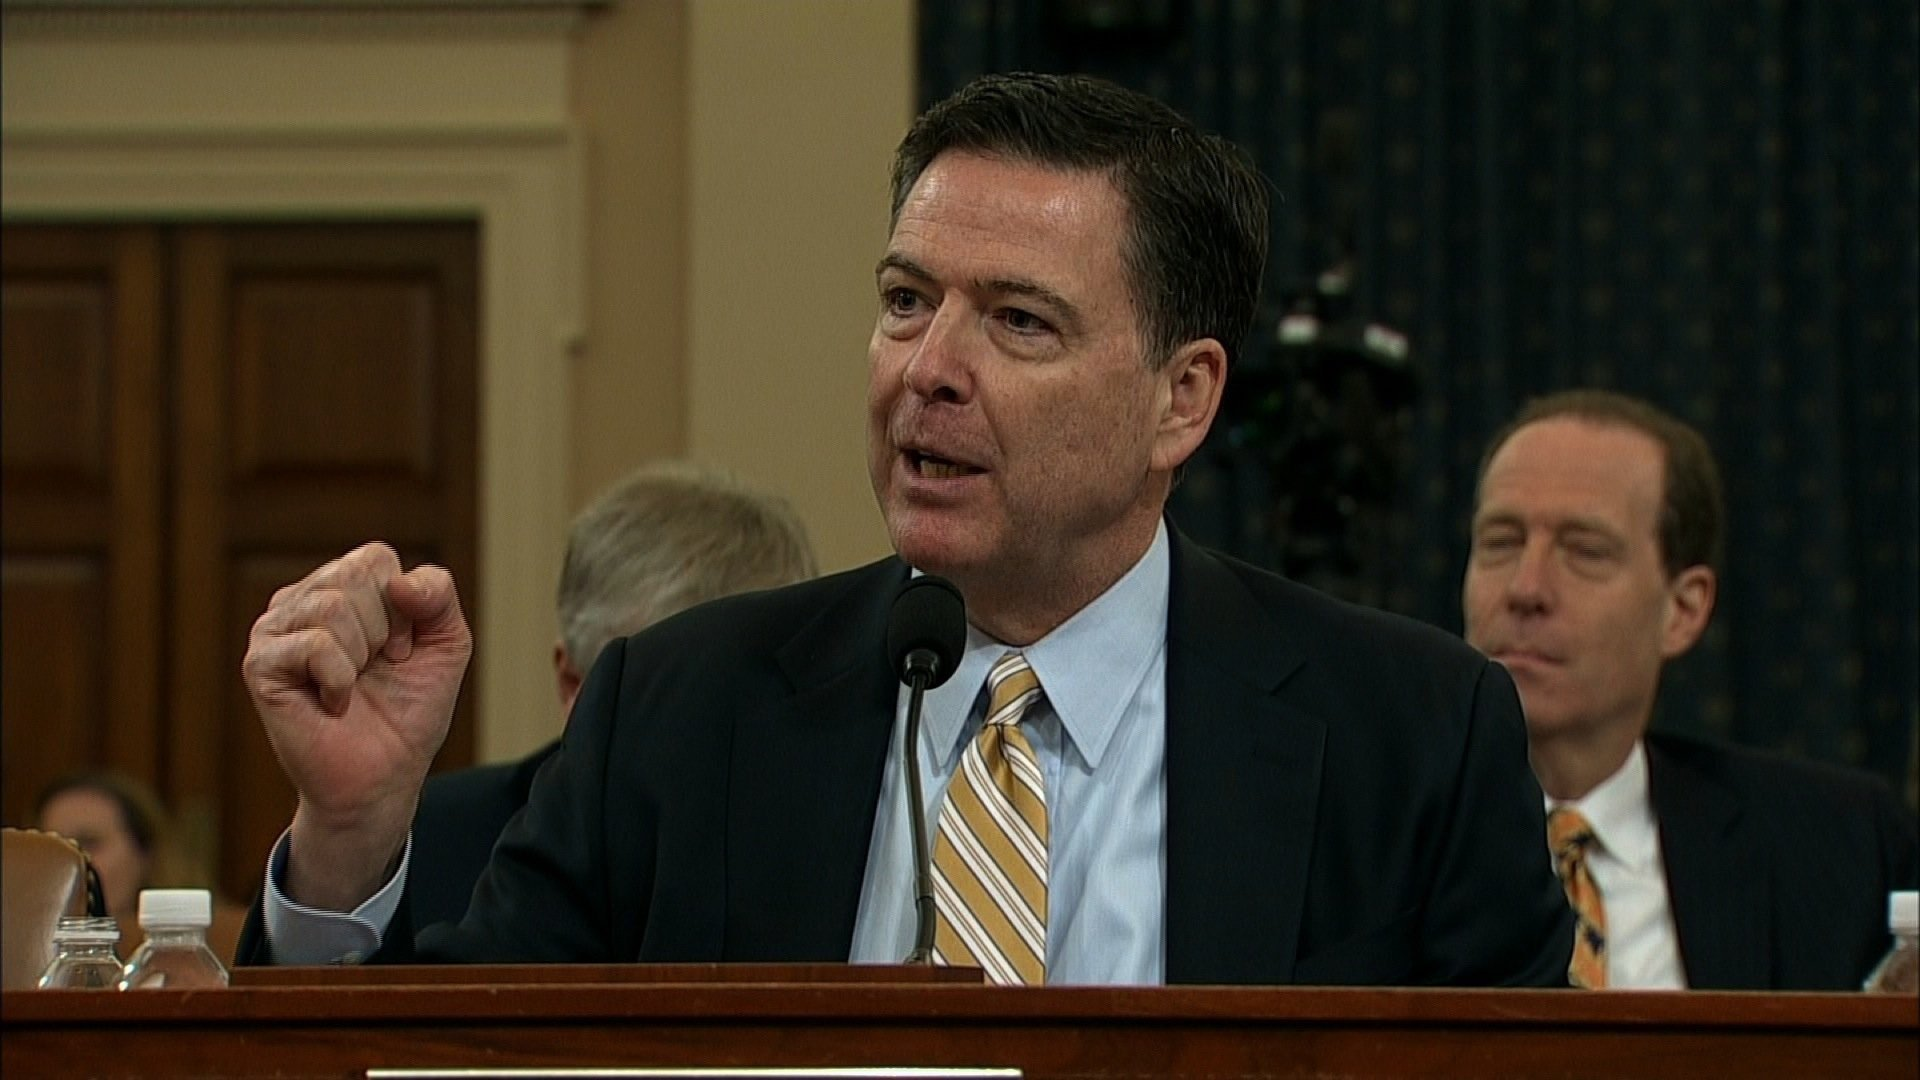 Watch Former FBI Director James Comey Testify Before Congress